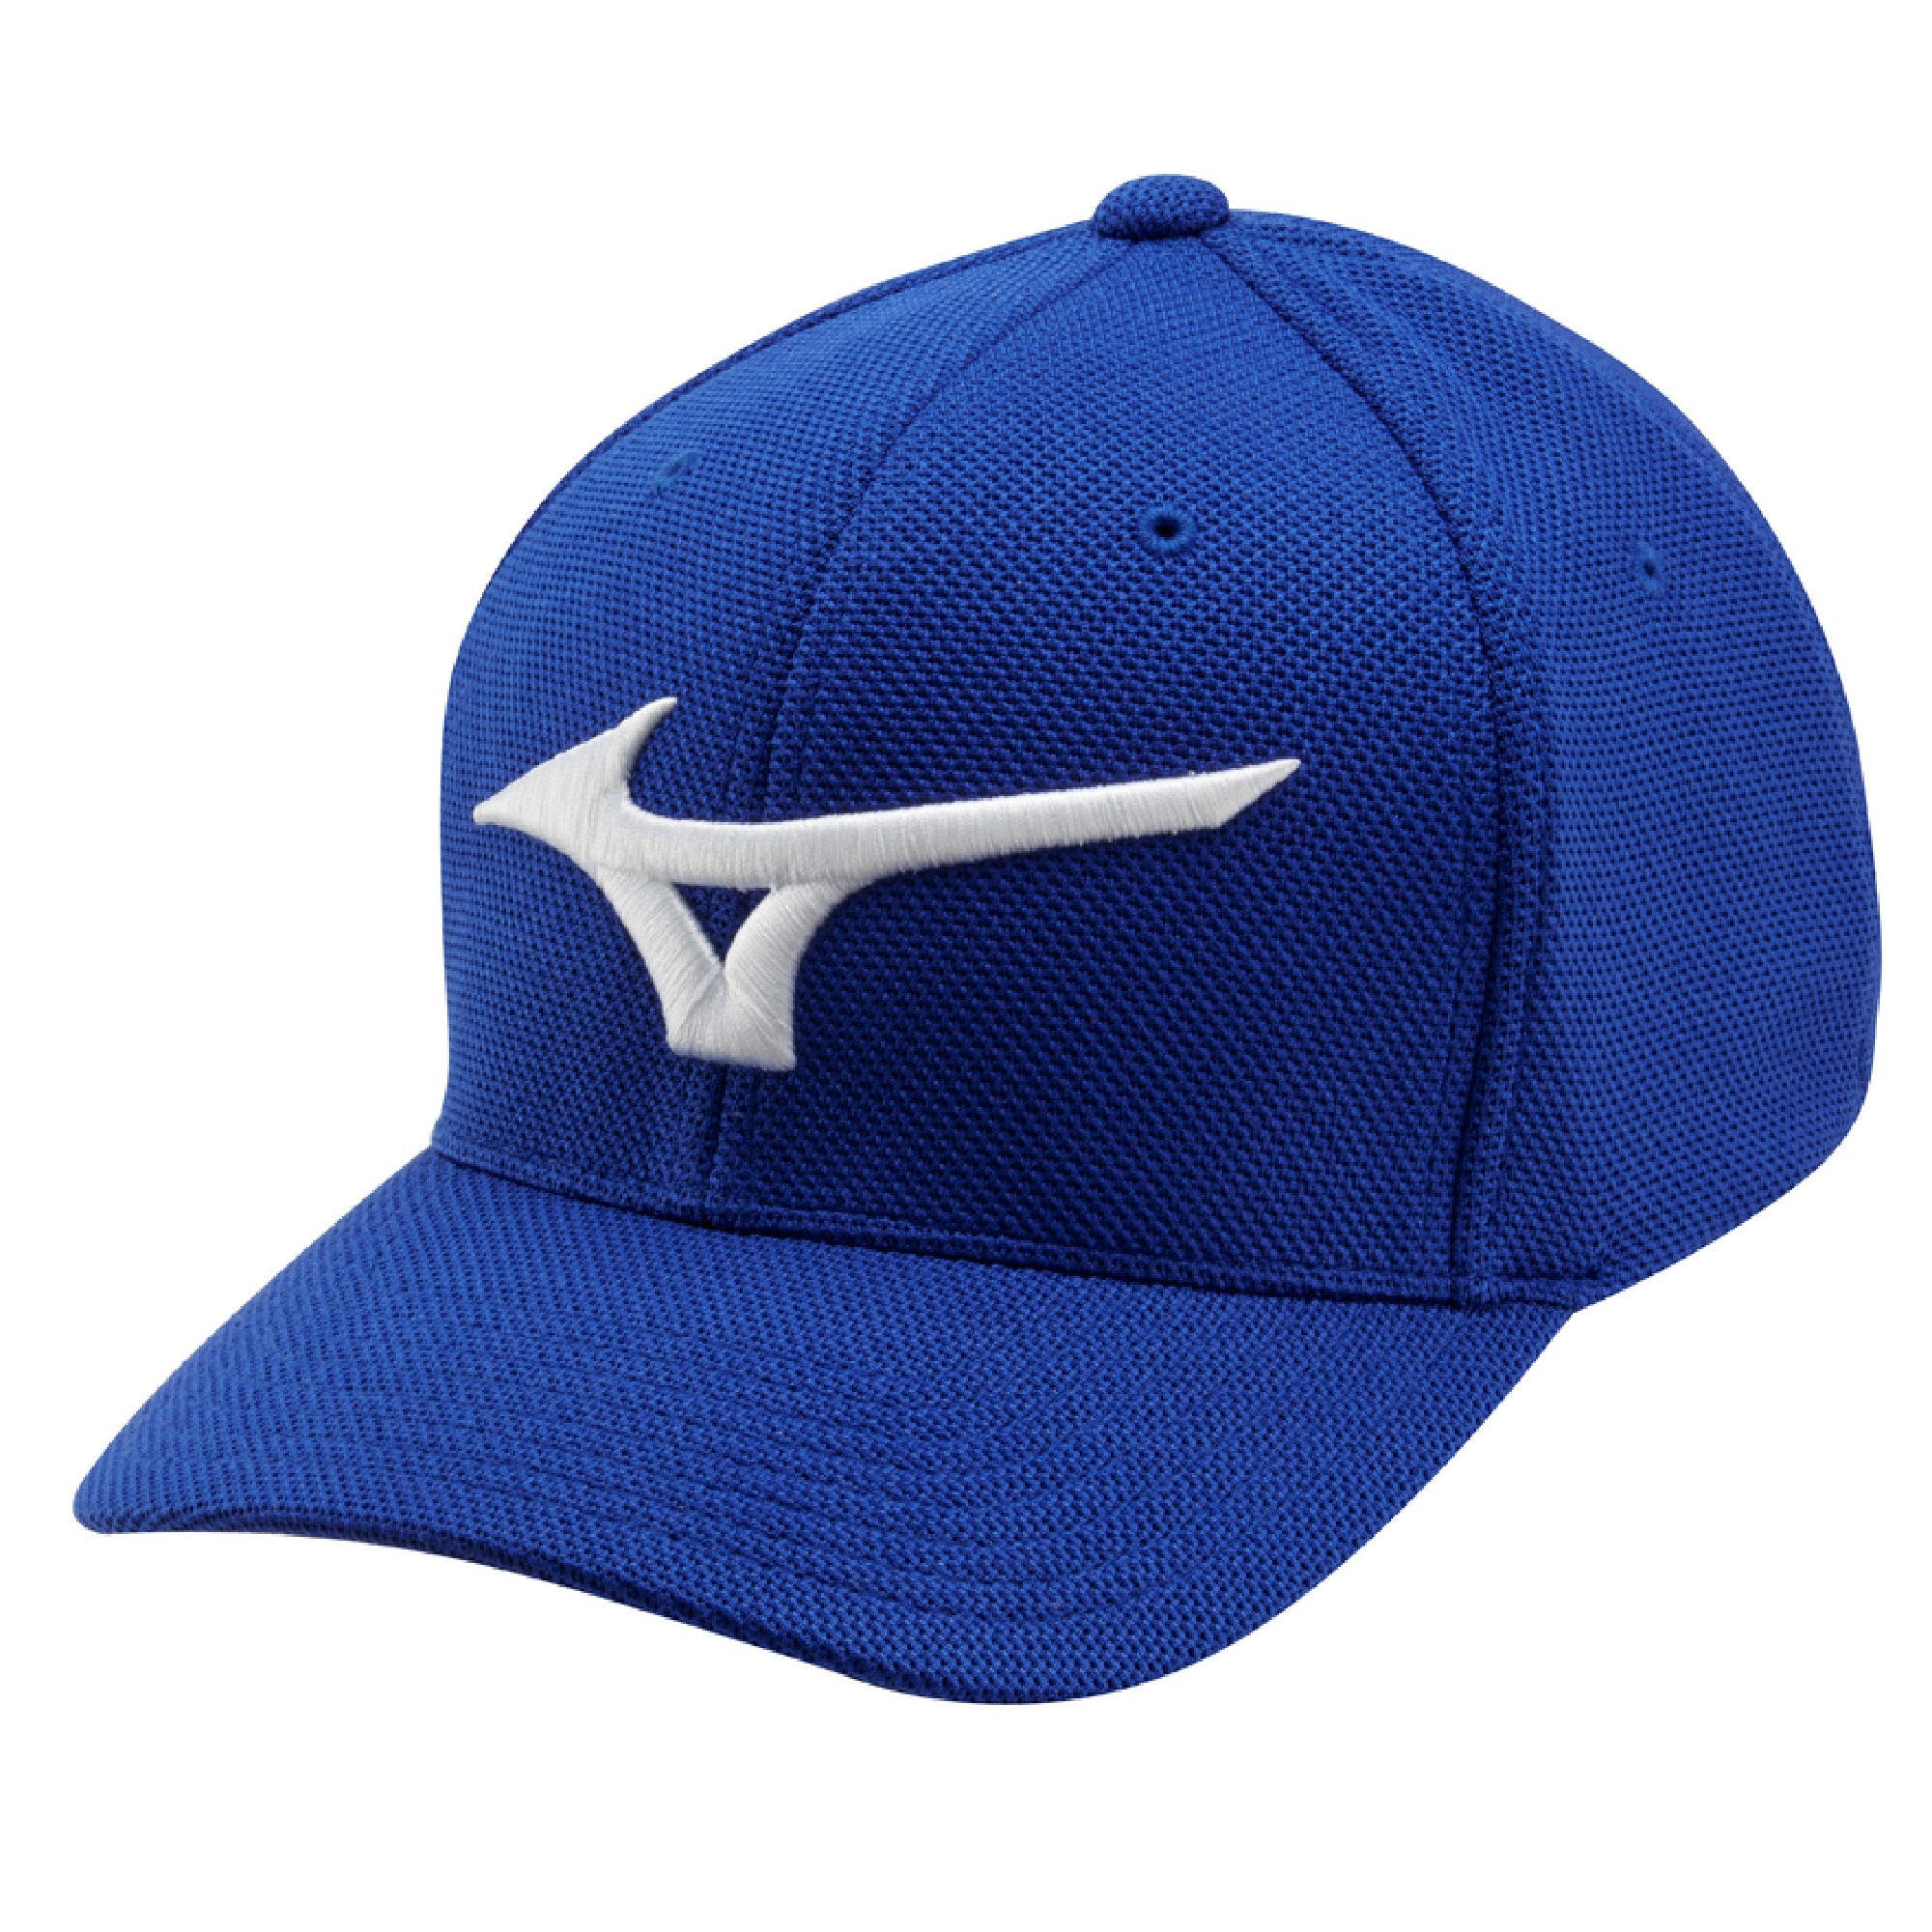 Mizuno Golf Tour Performance Cap 52FF1801P